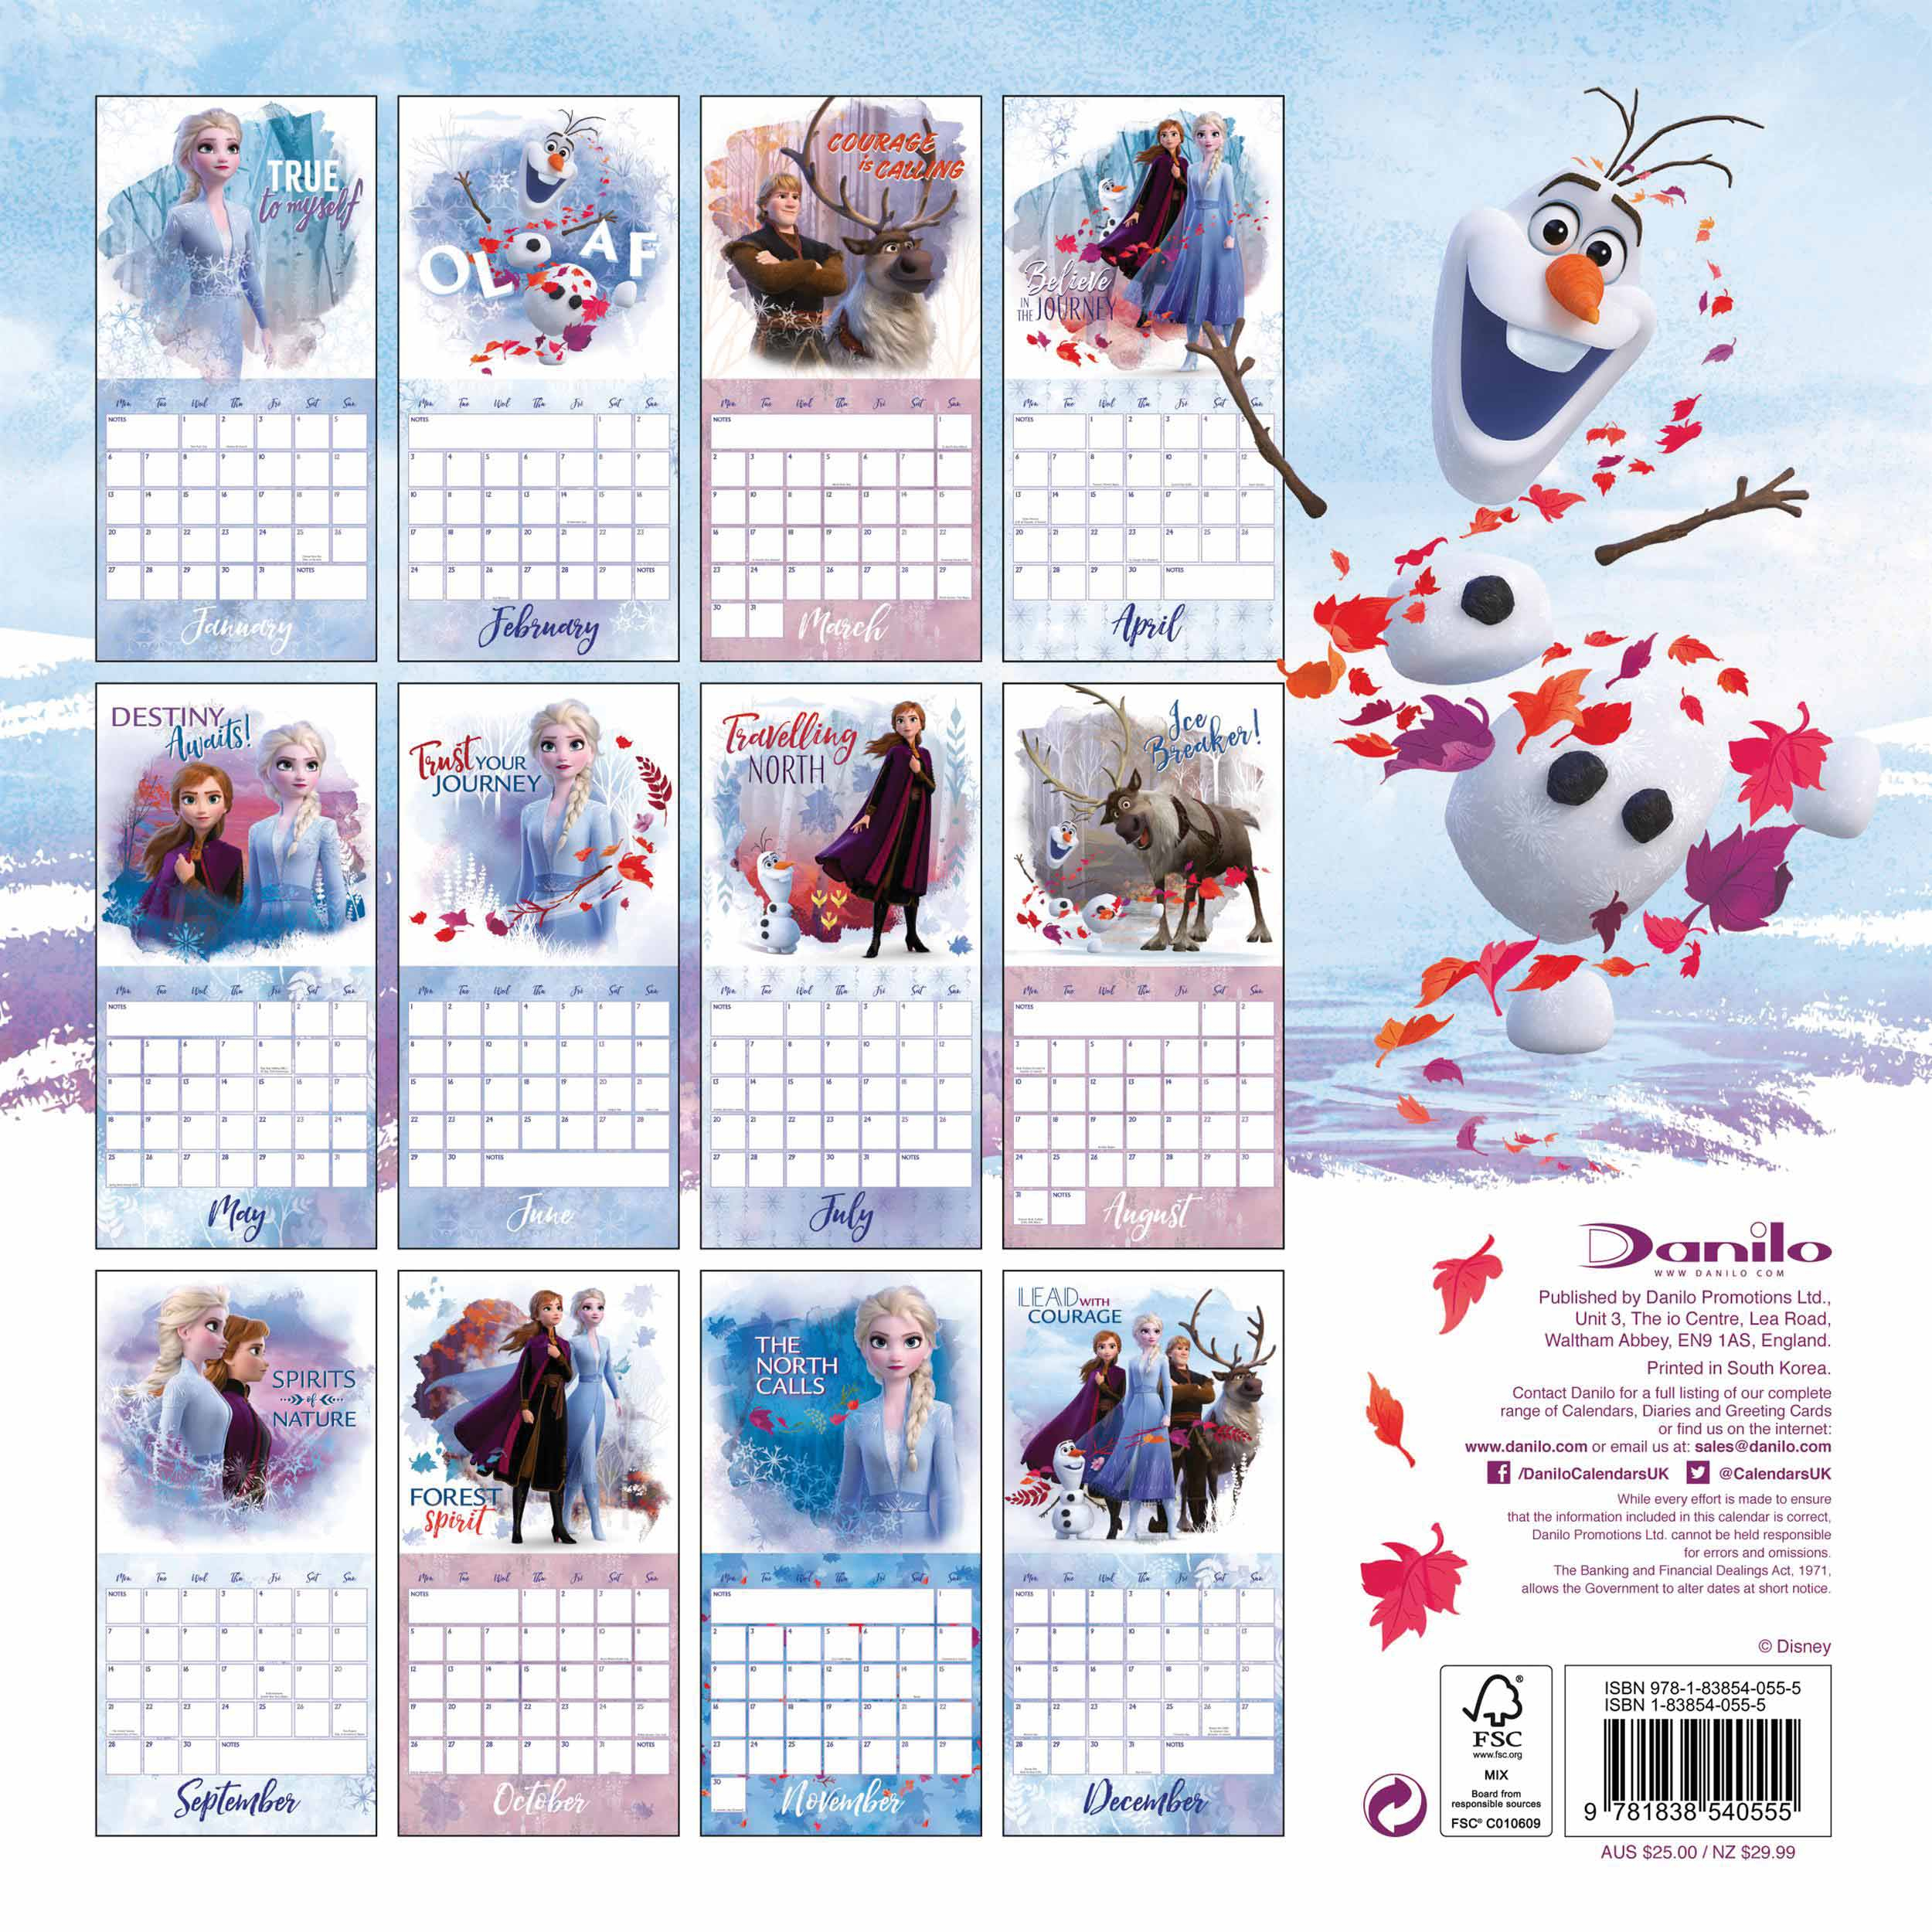 Disney, Frozen 2 Official Calendar 2020 - Calendar Club Uk